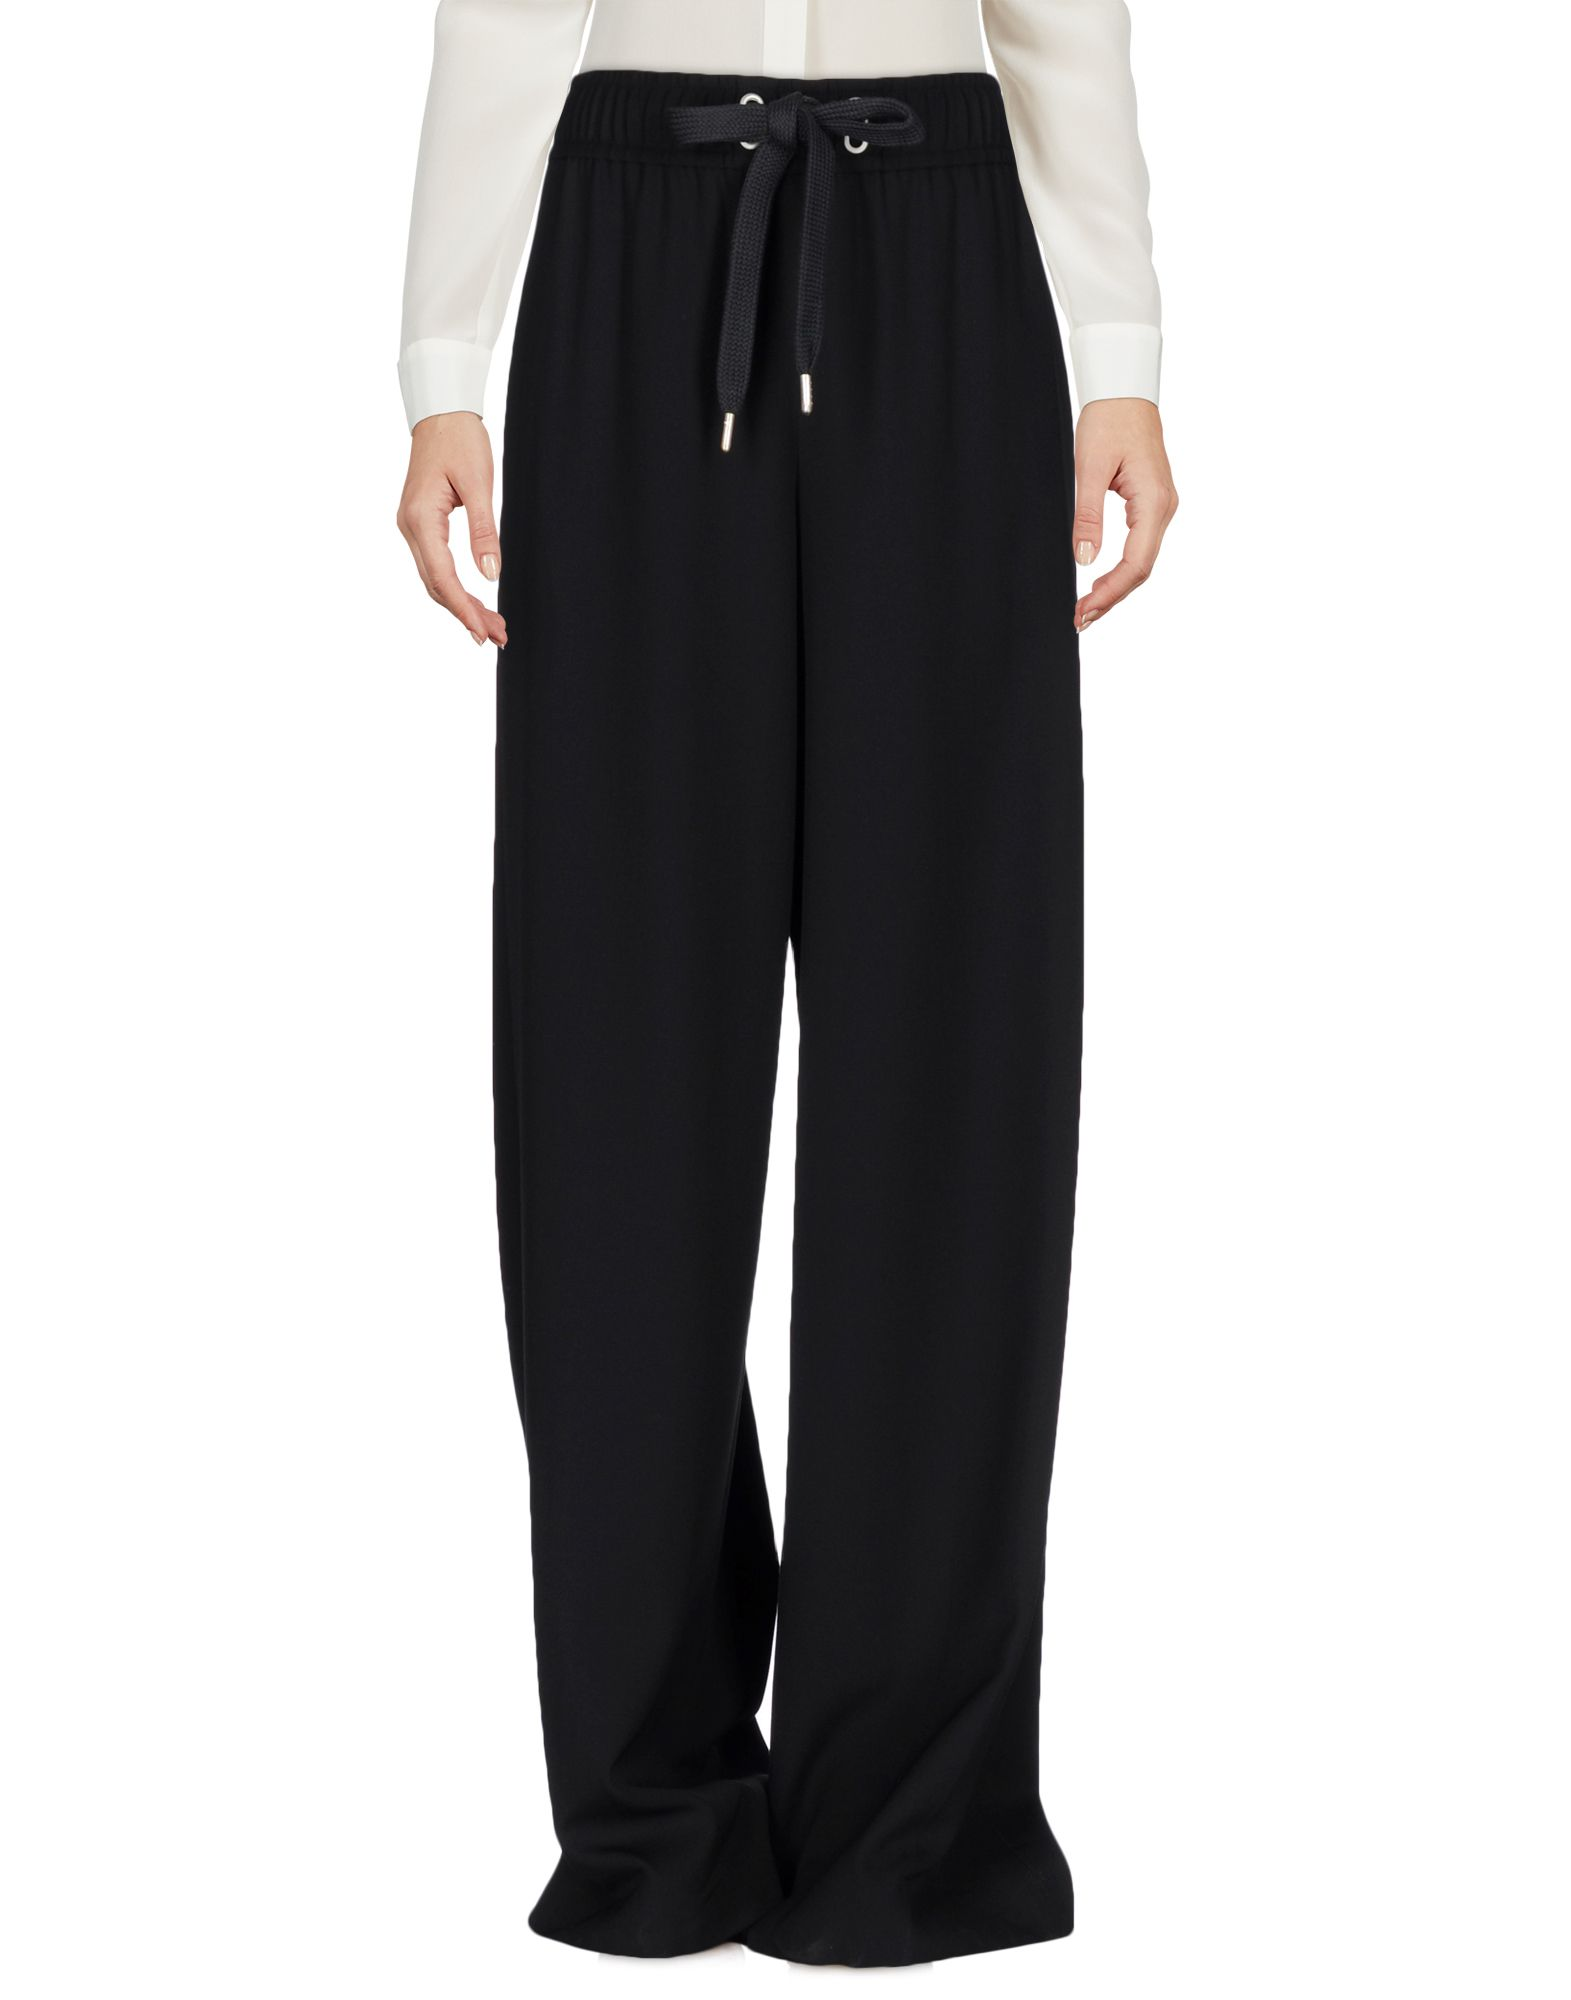 SOLD OUT Pantalone Alexander Wang Donna - Acquista online su jLtlk4